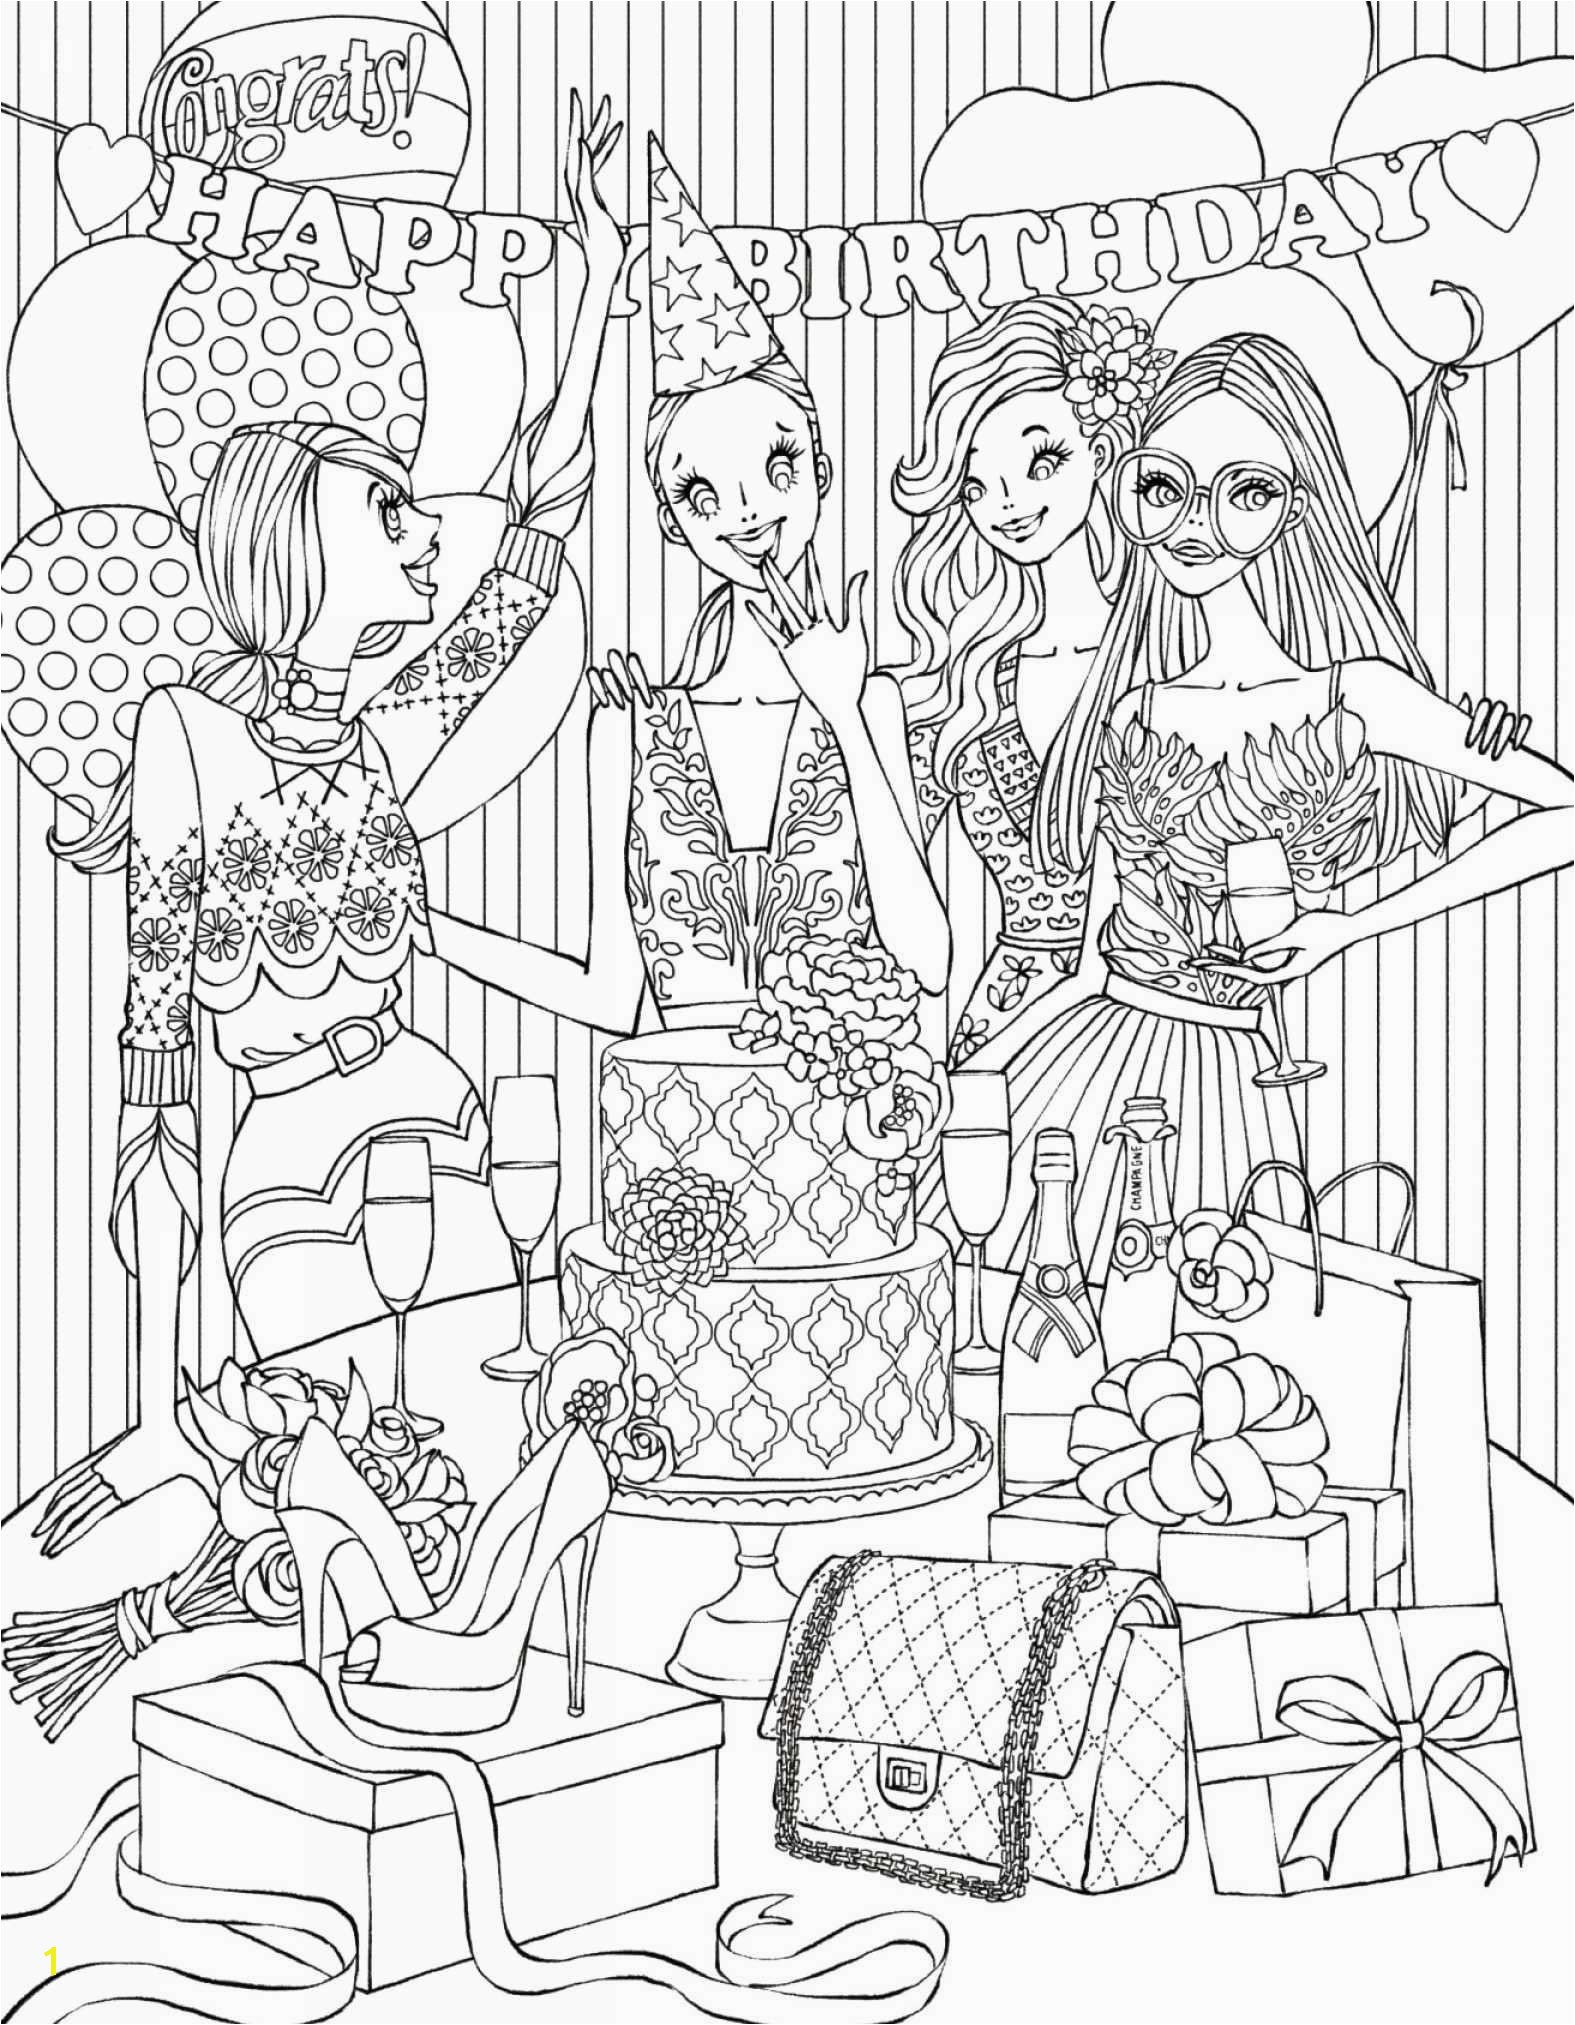 Christmas Scenes Coloring Pages